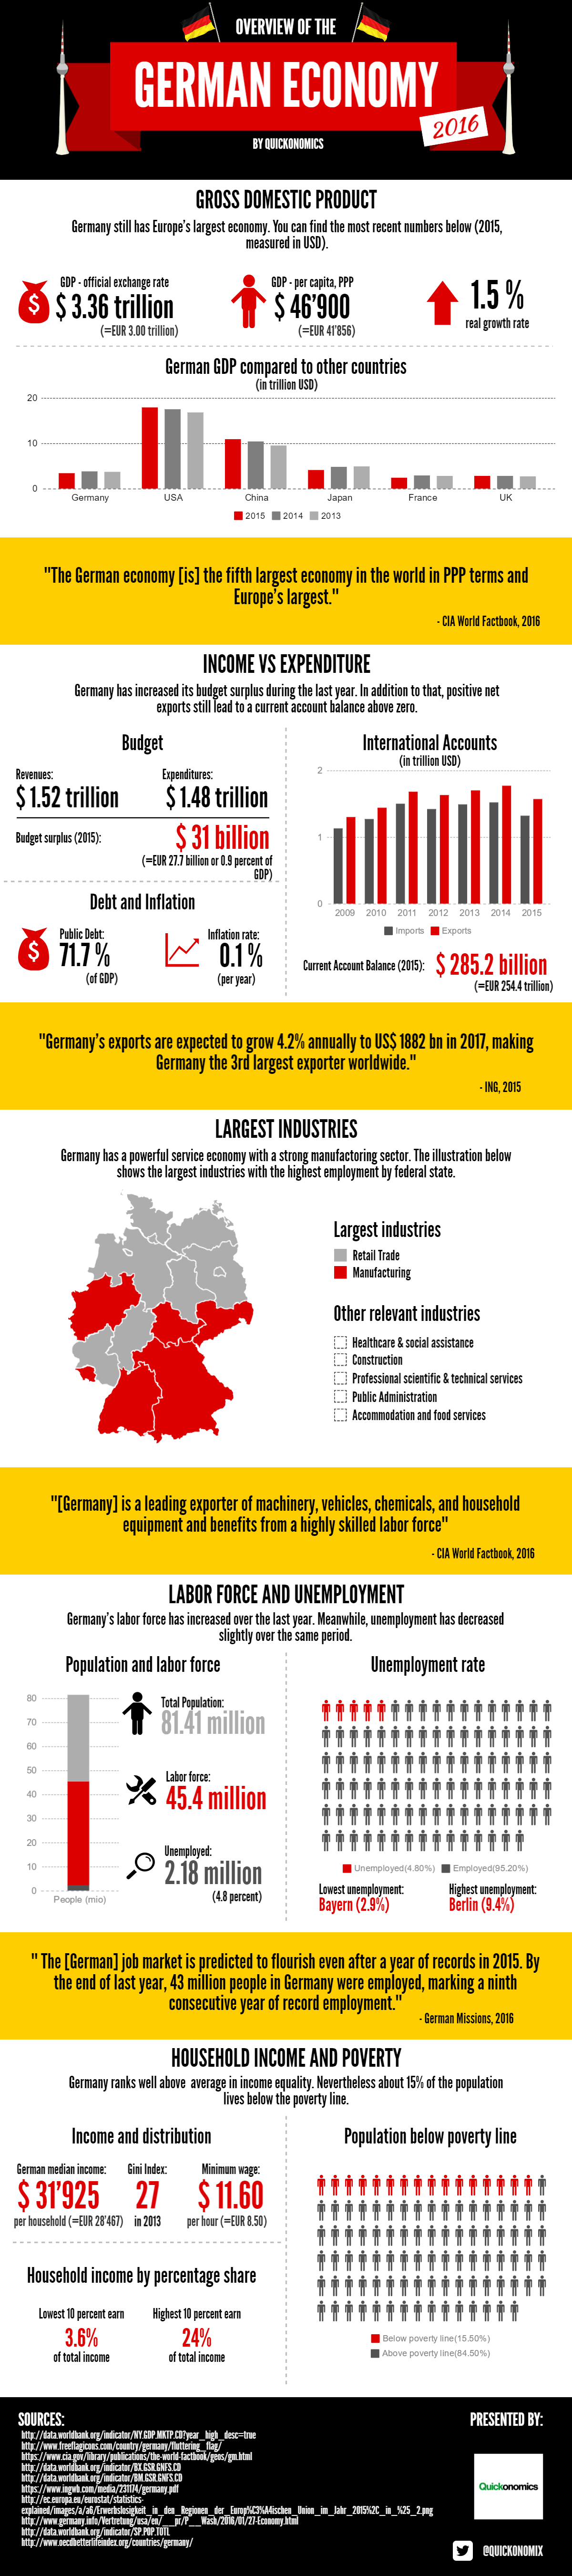 Overview of the German Economy 2016